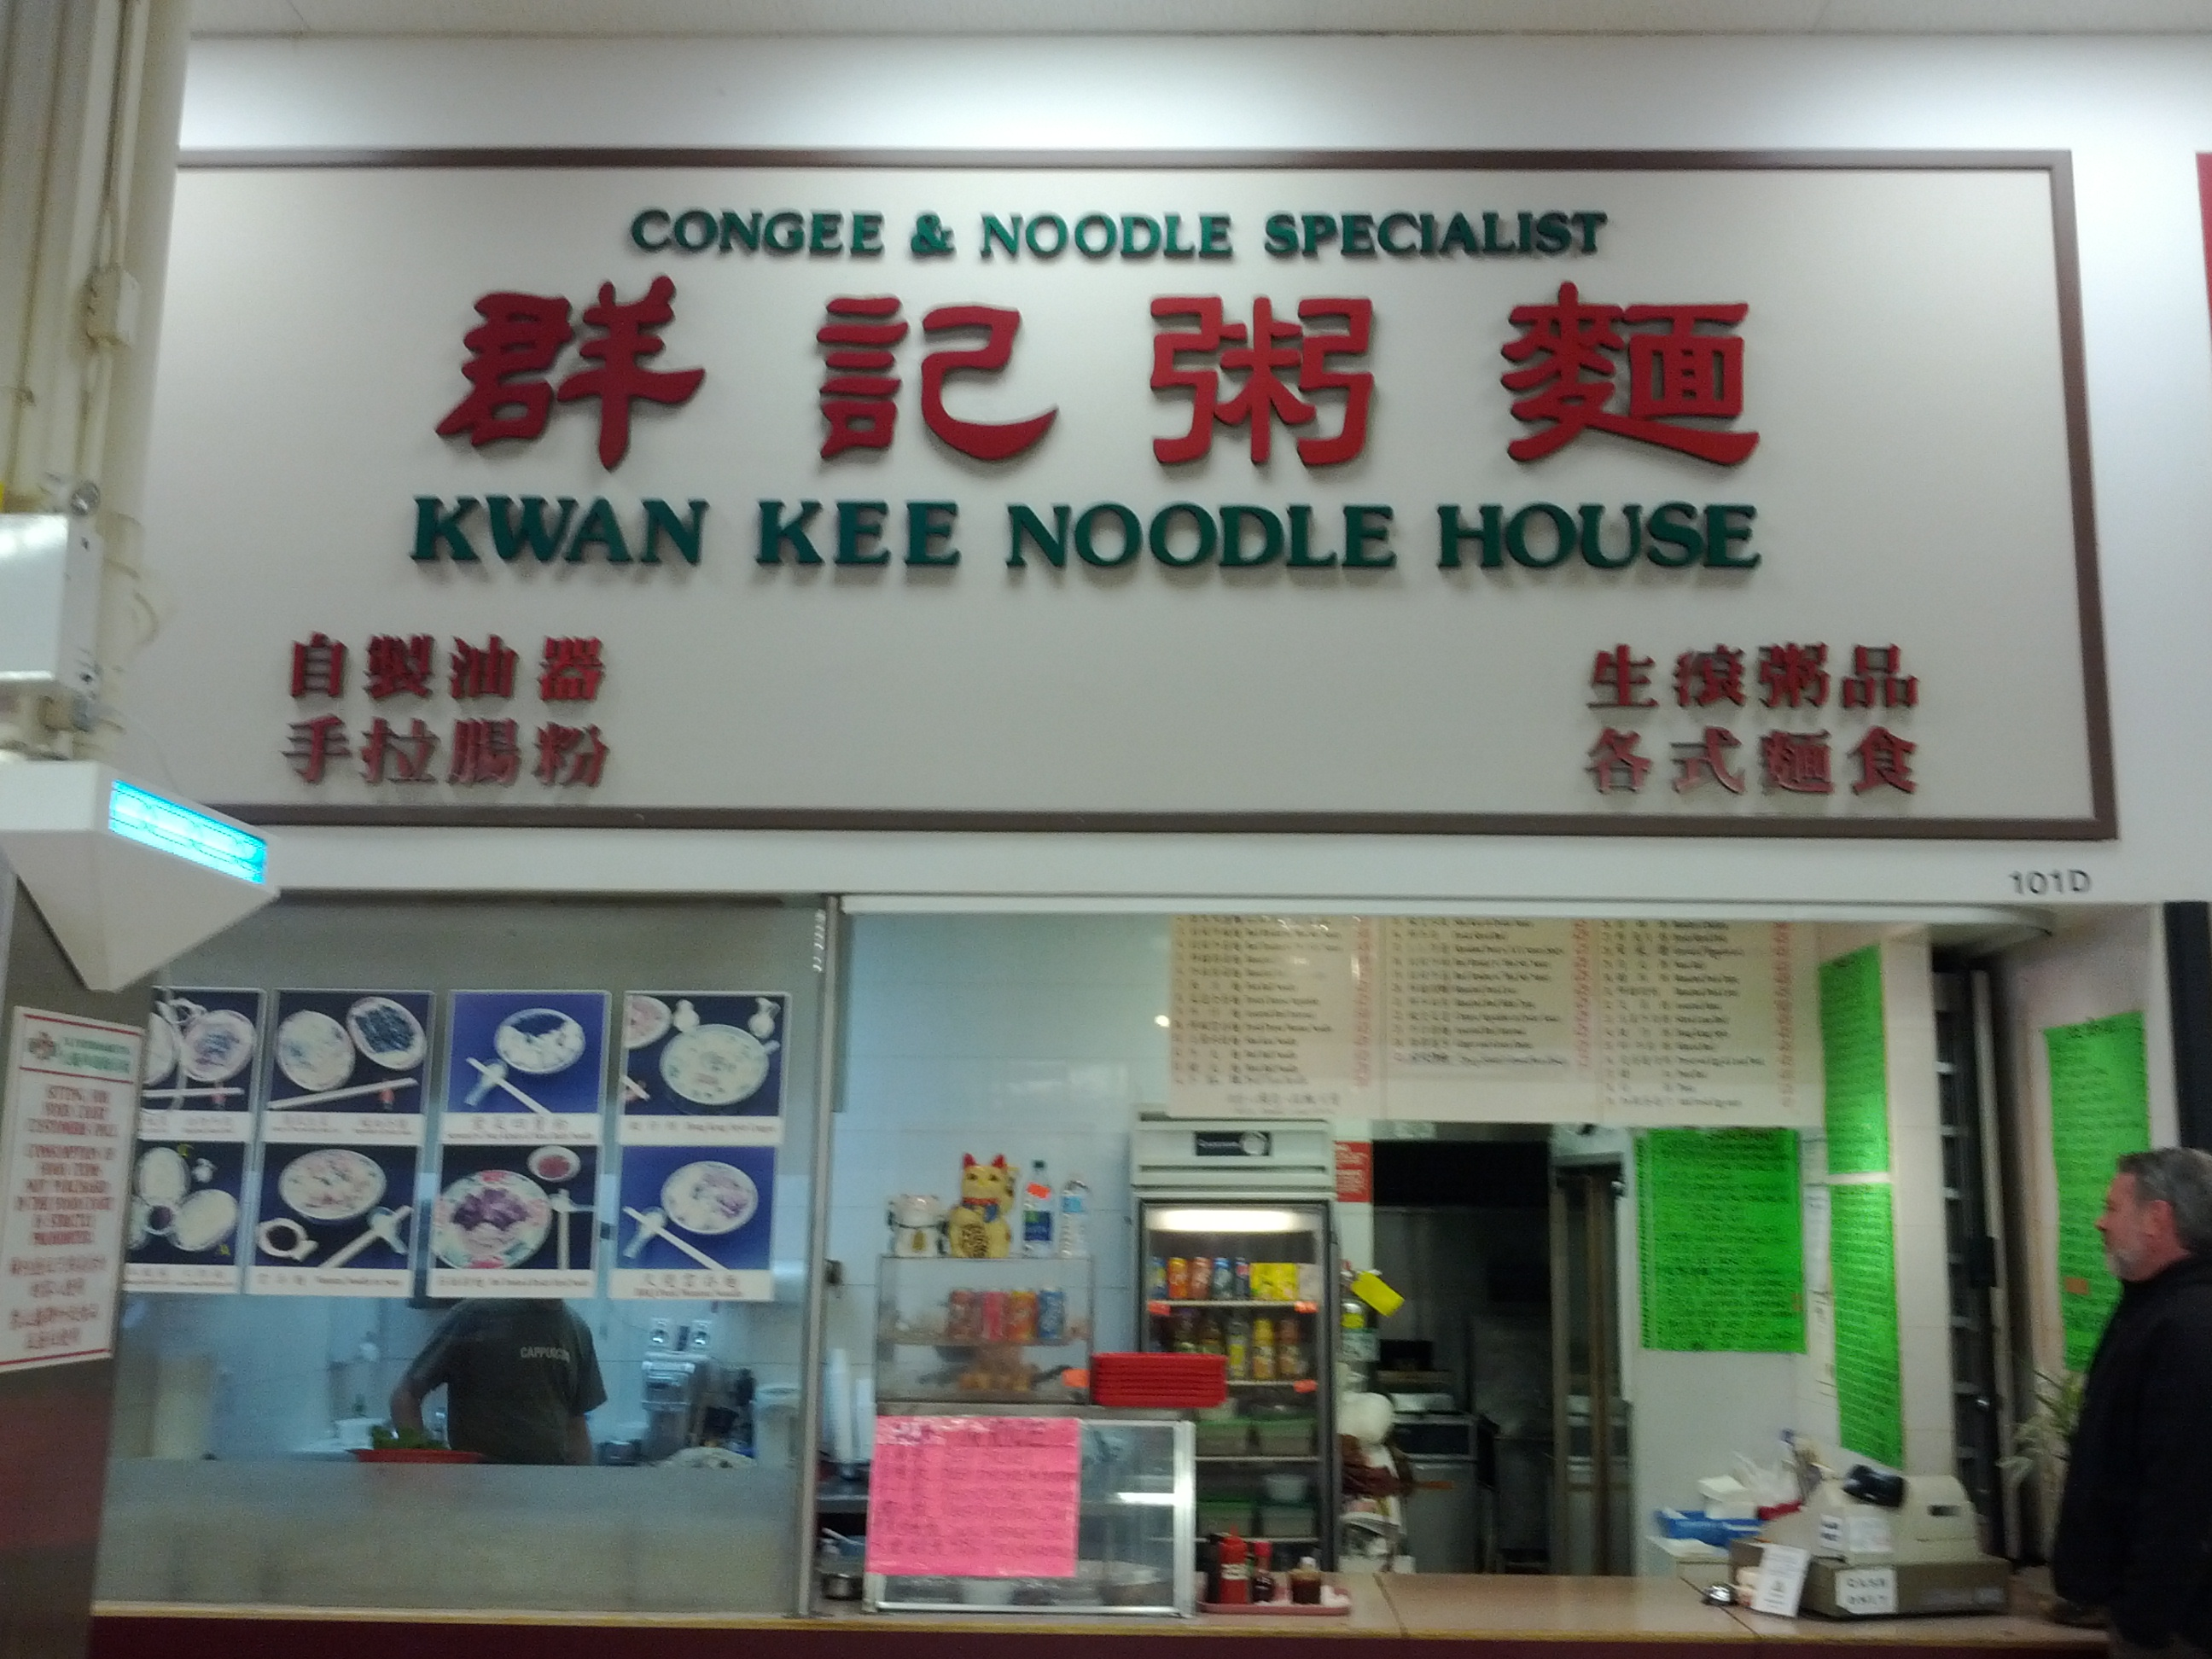 Kwan Kee Noodle House